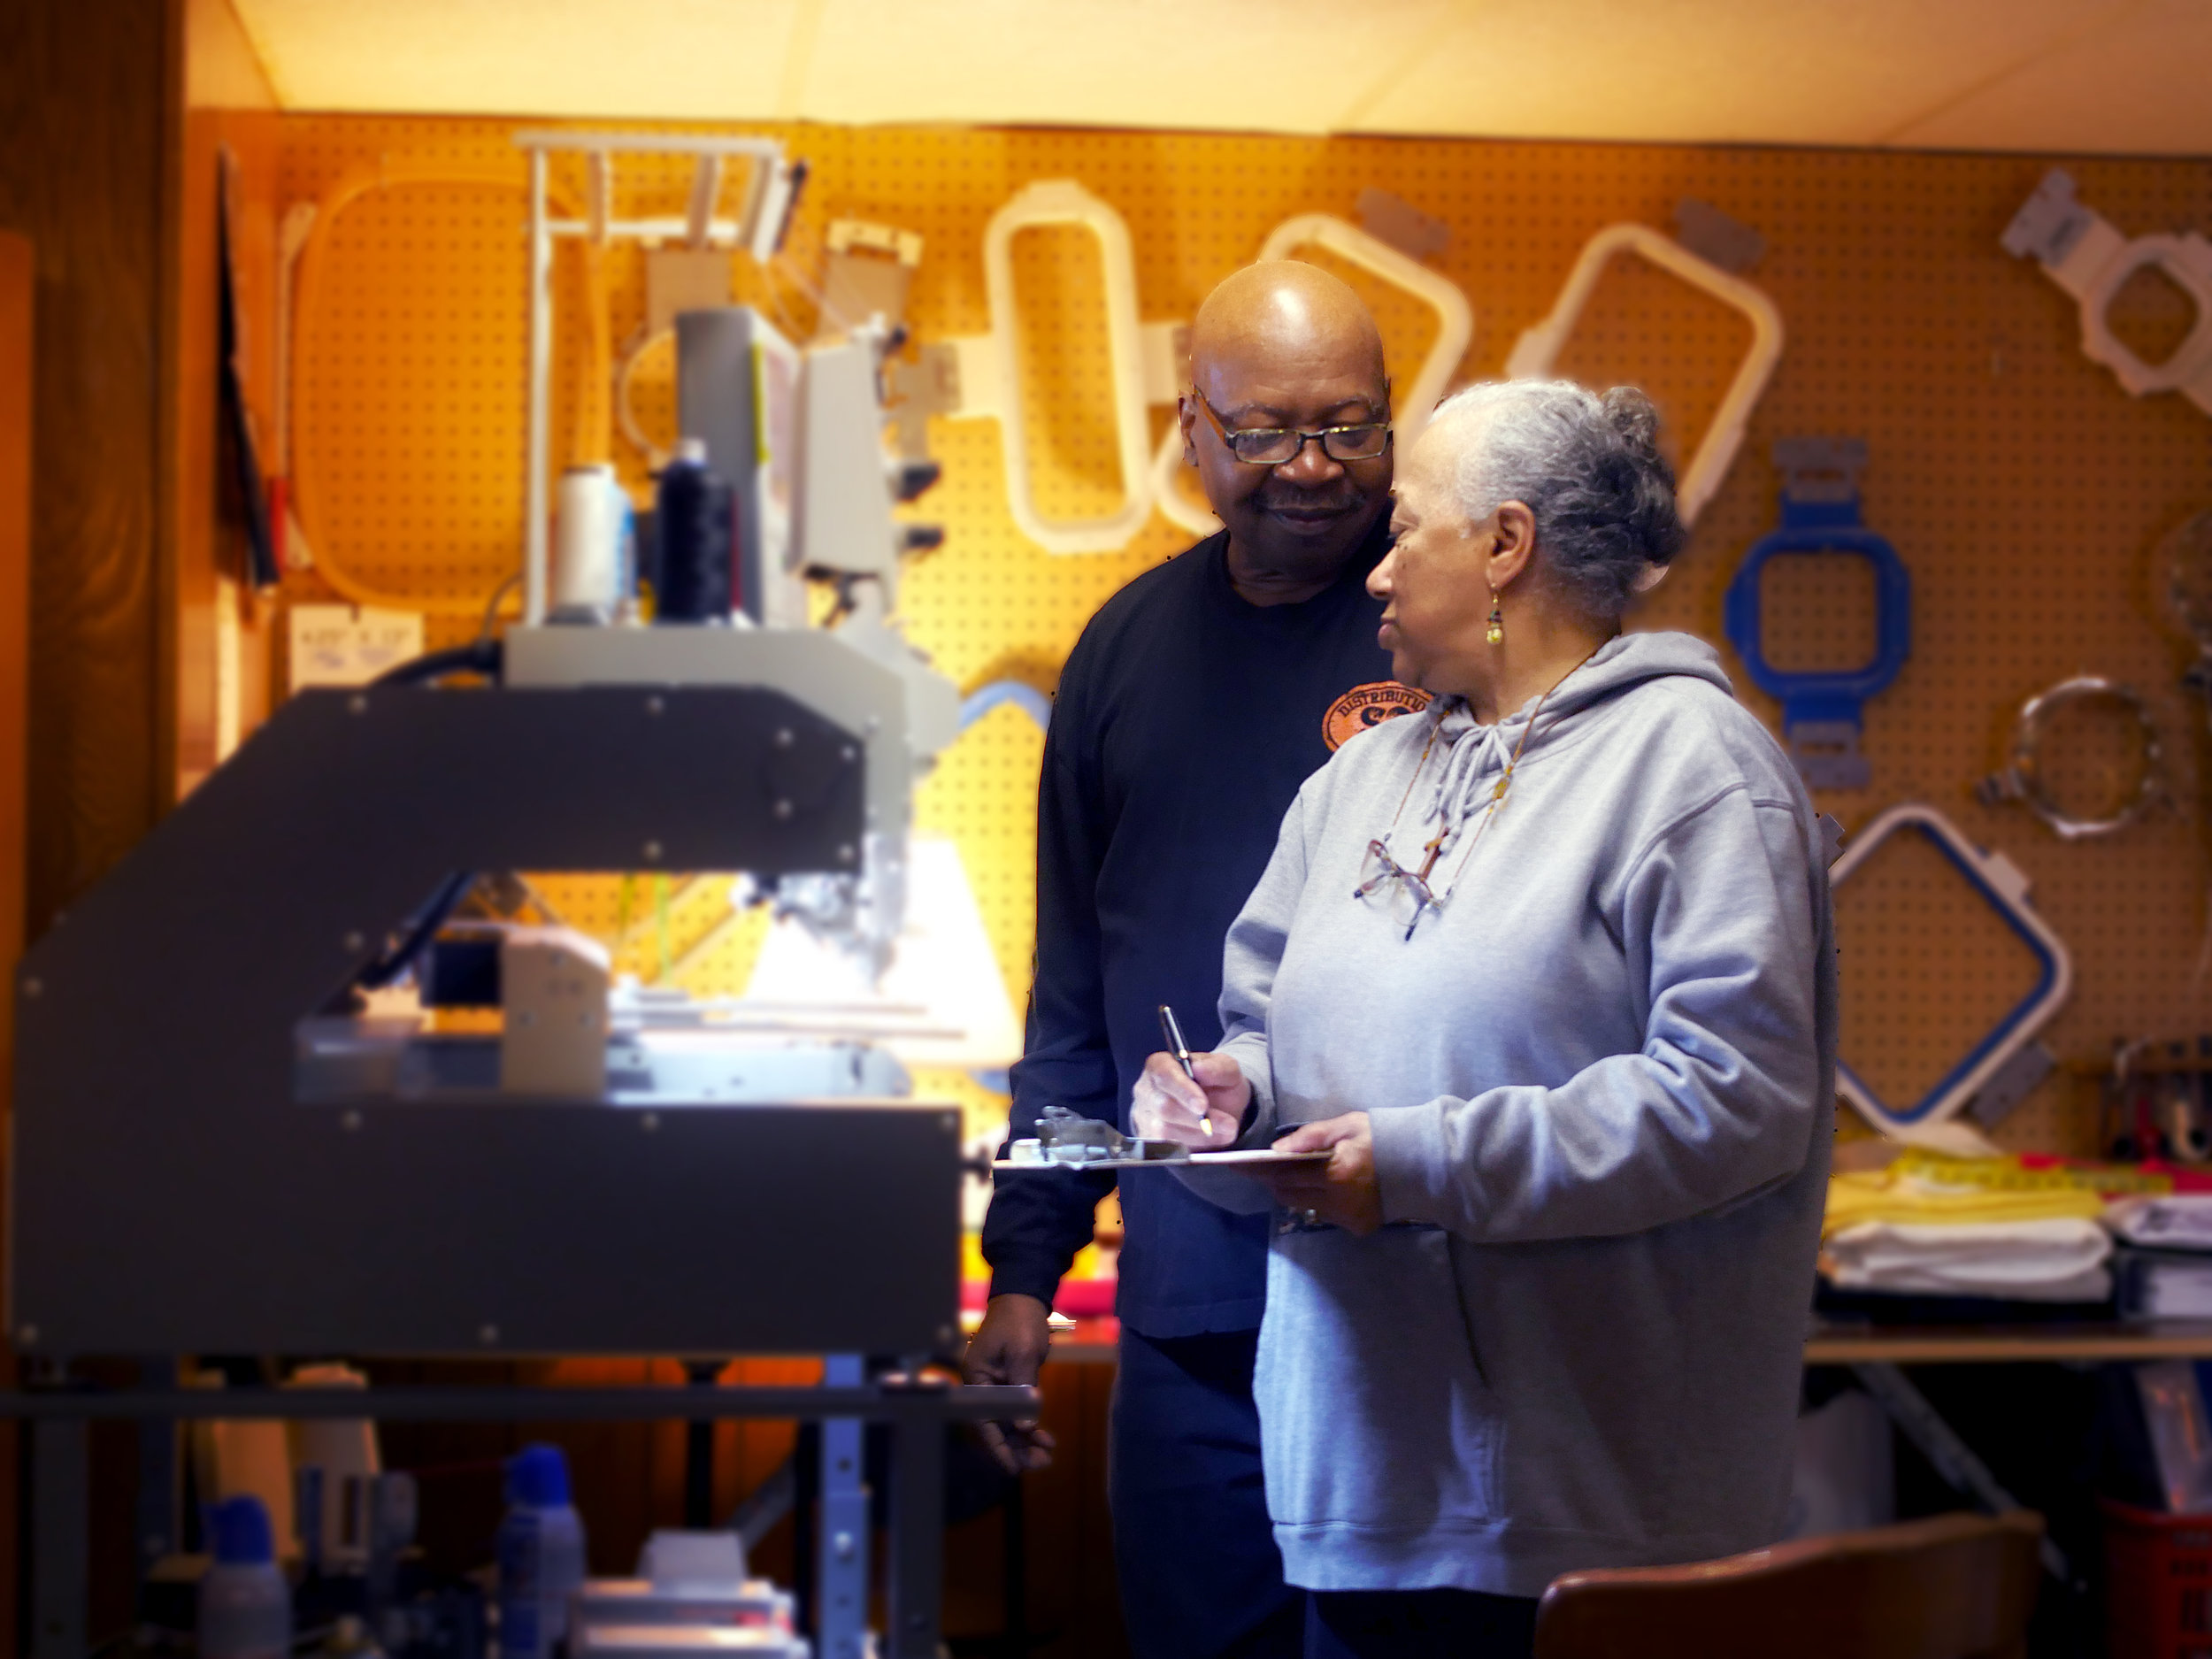 Calvin and Shellene Coleman in their home workshop